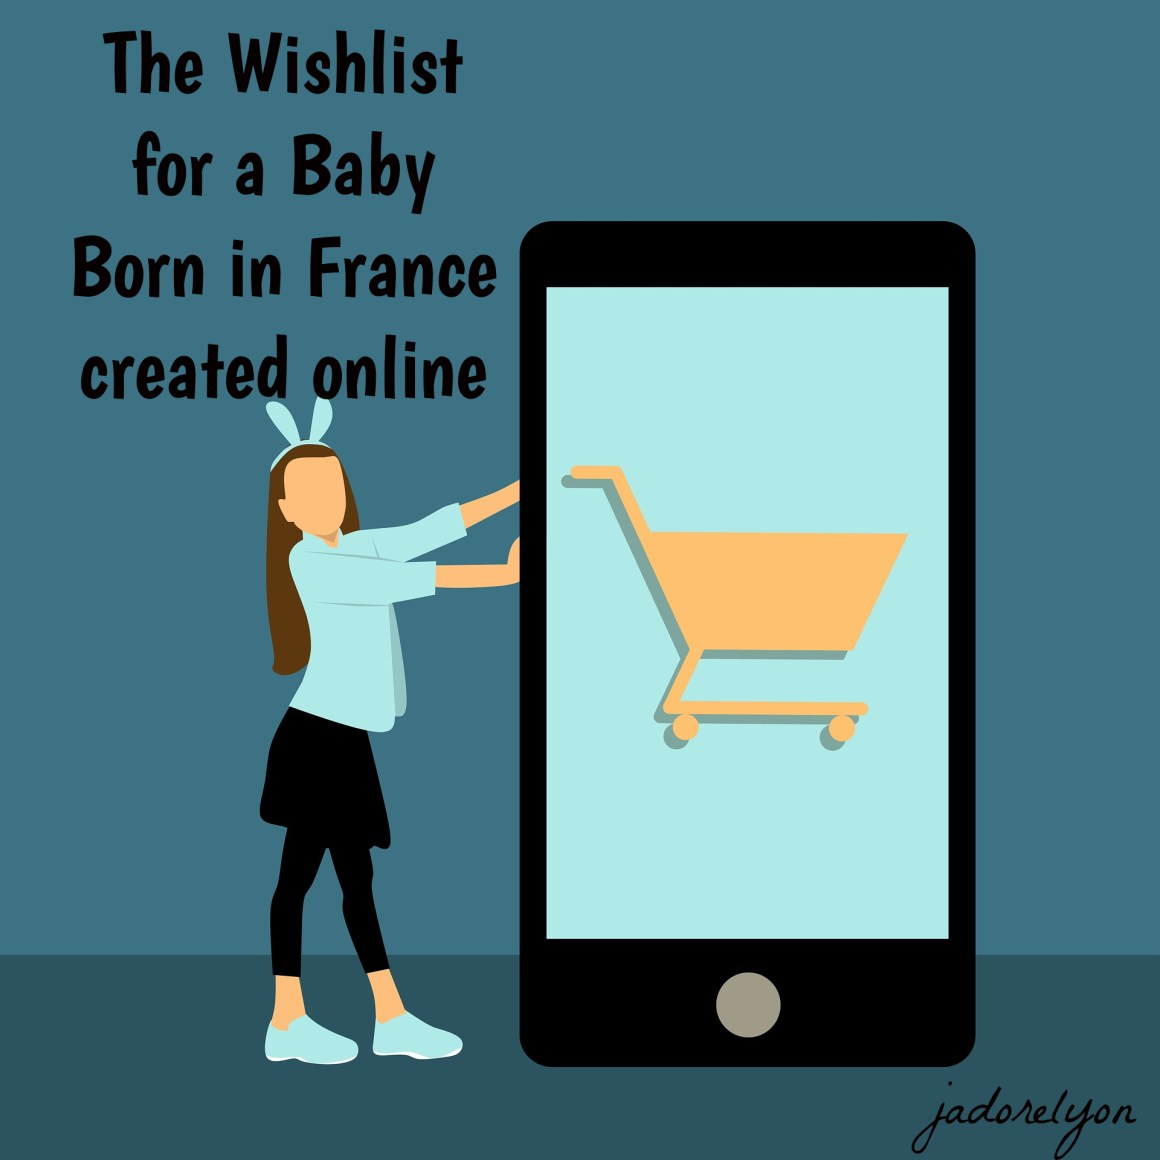 The Wishlist for a Baby Born in France created online